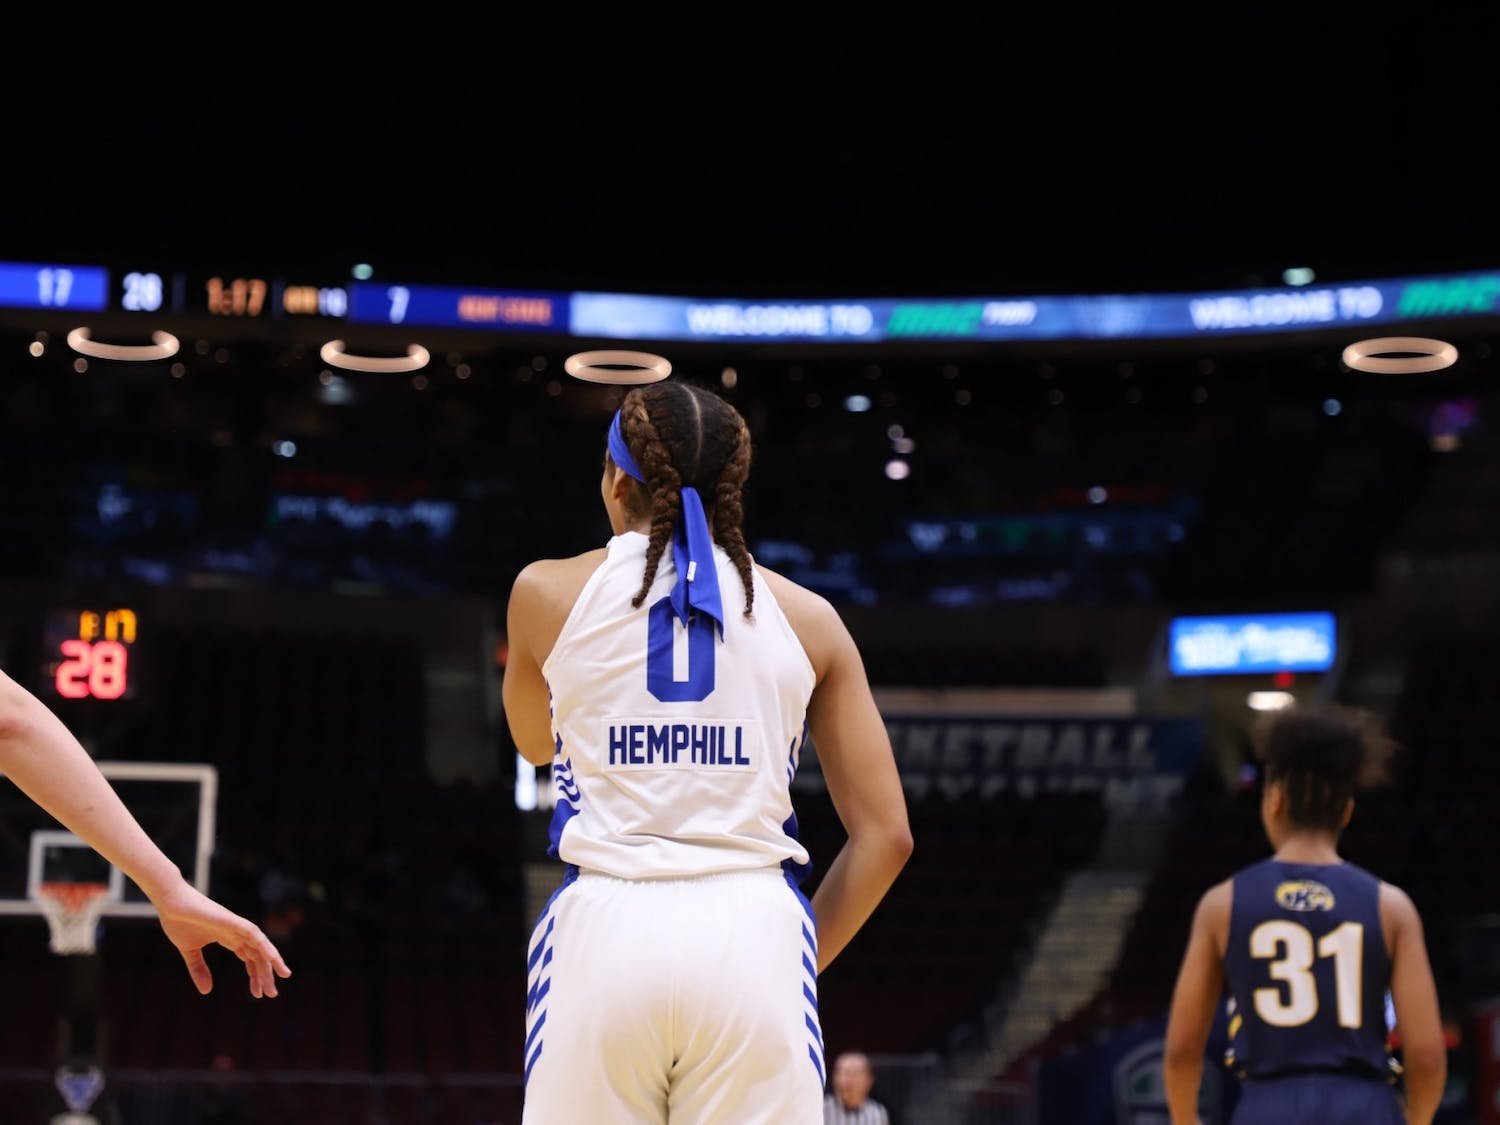 Summer Hemphill had an interesting path to the sport. She didn't play competitive basketball until she was 12 but dabbled in nearly everything else, including tee-ball, softball, volleyball and track and field.